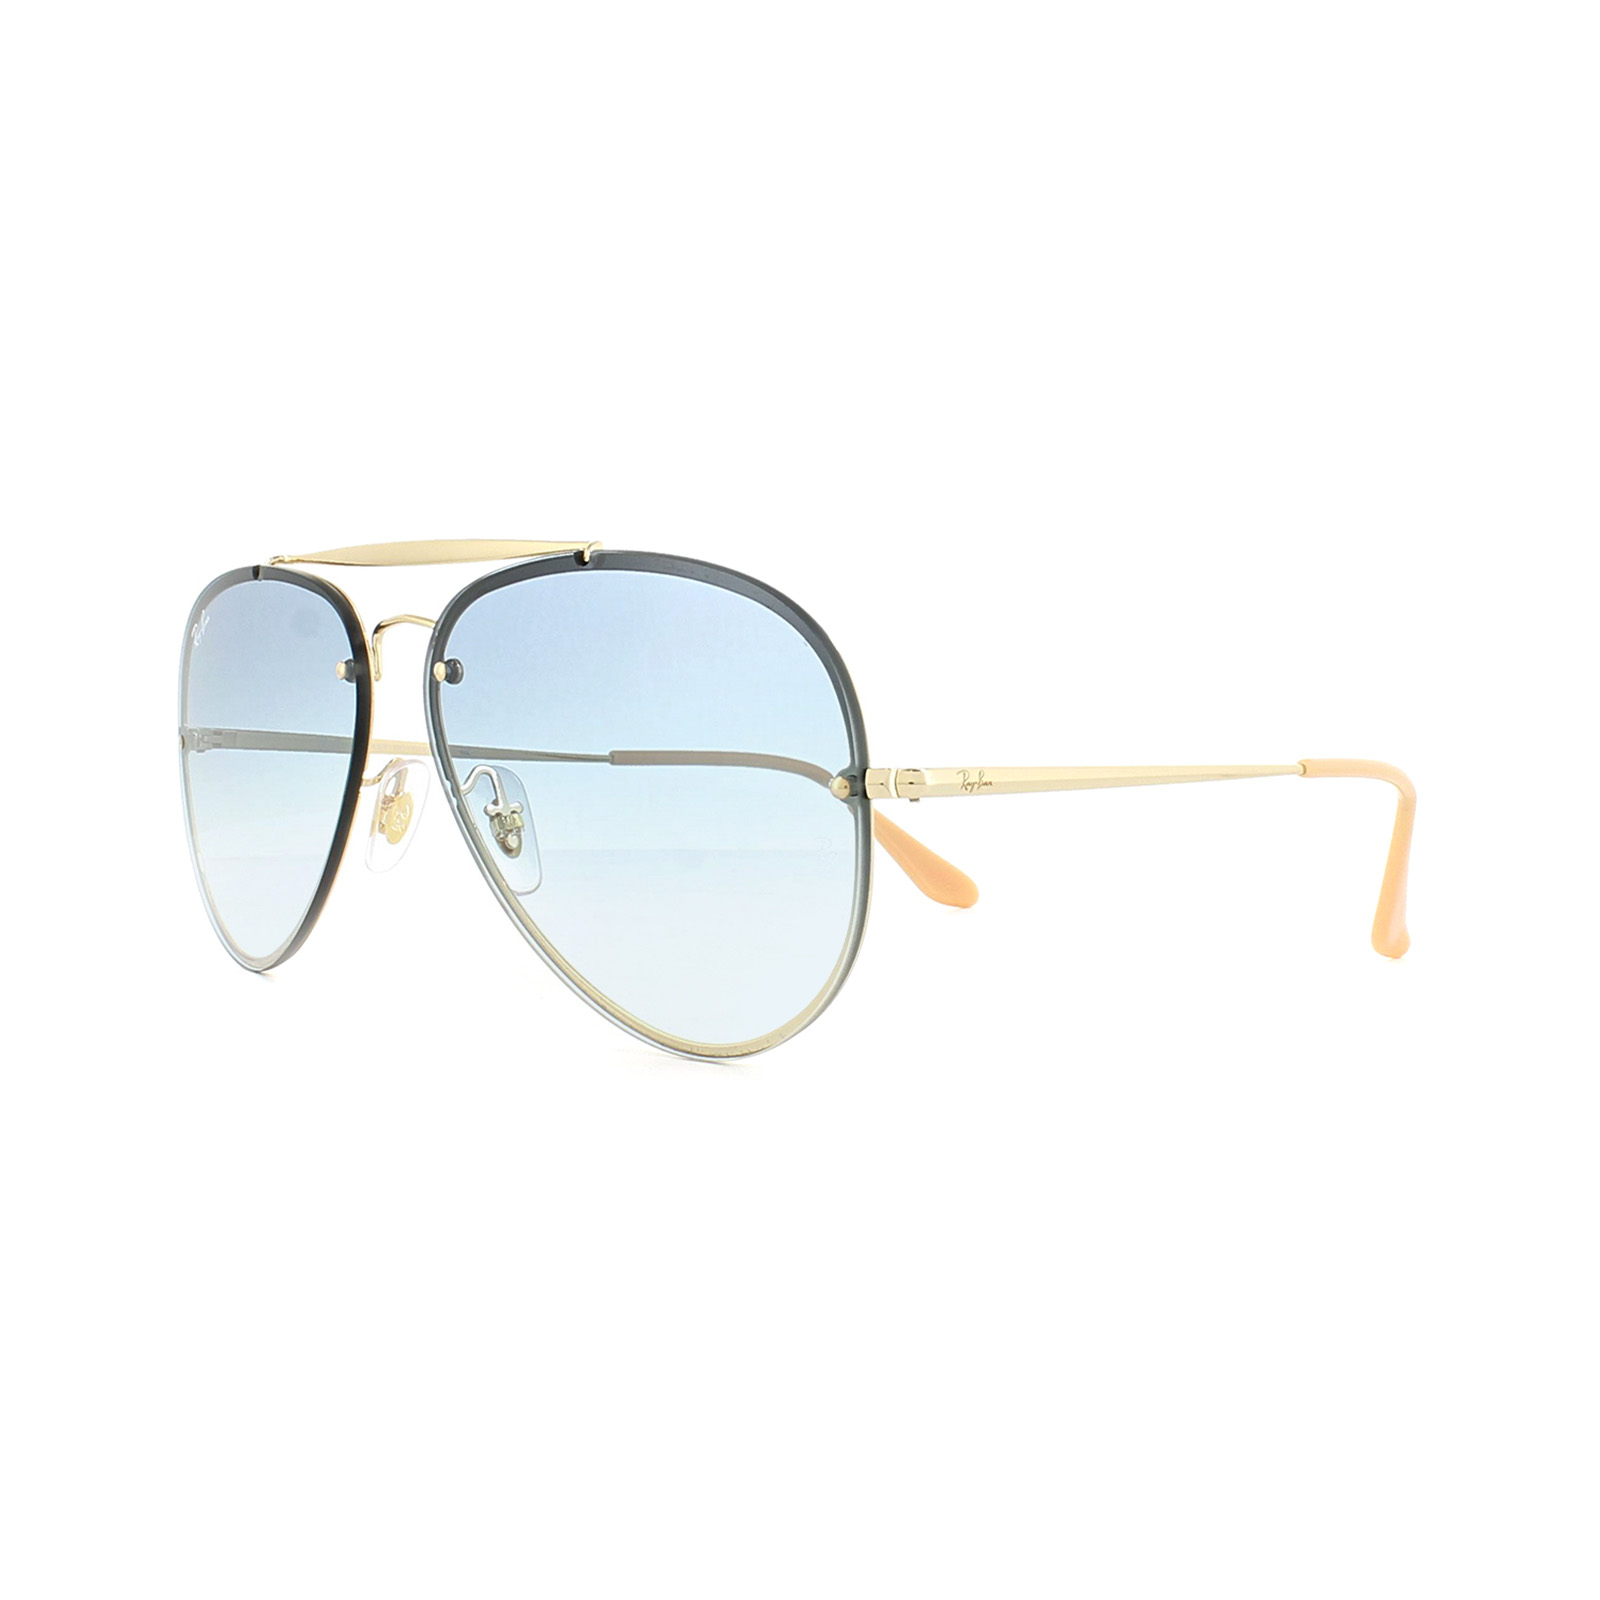 Sentinel Ray-Ban Sunglasses Blaze Aviator 3584N 001 19 Gold Light Blue  Gradient 92be59b293635